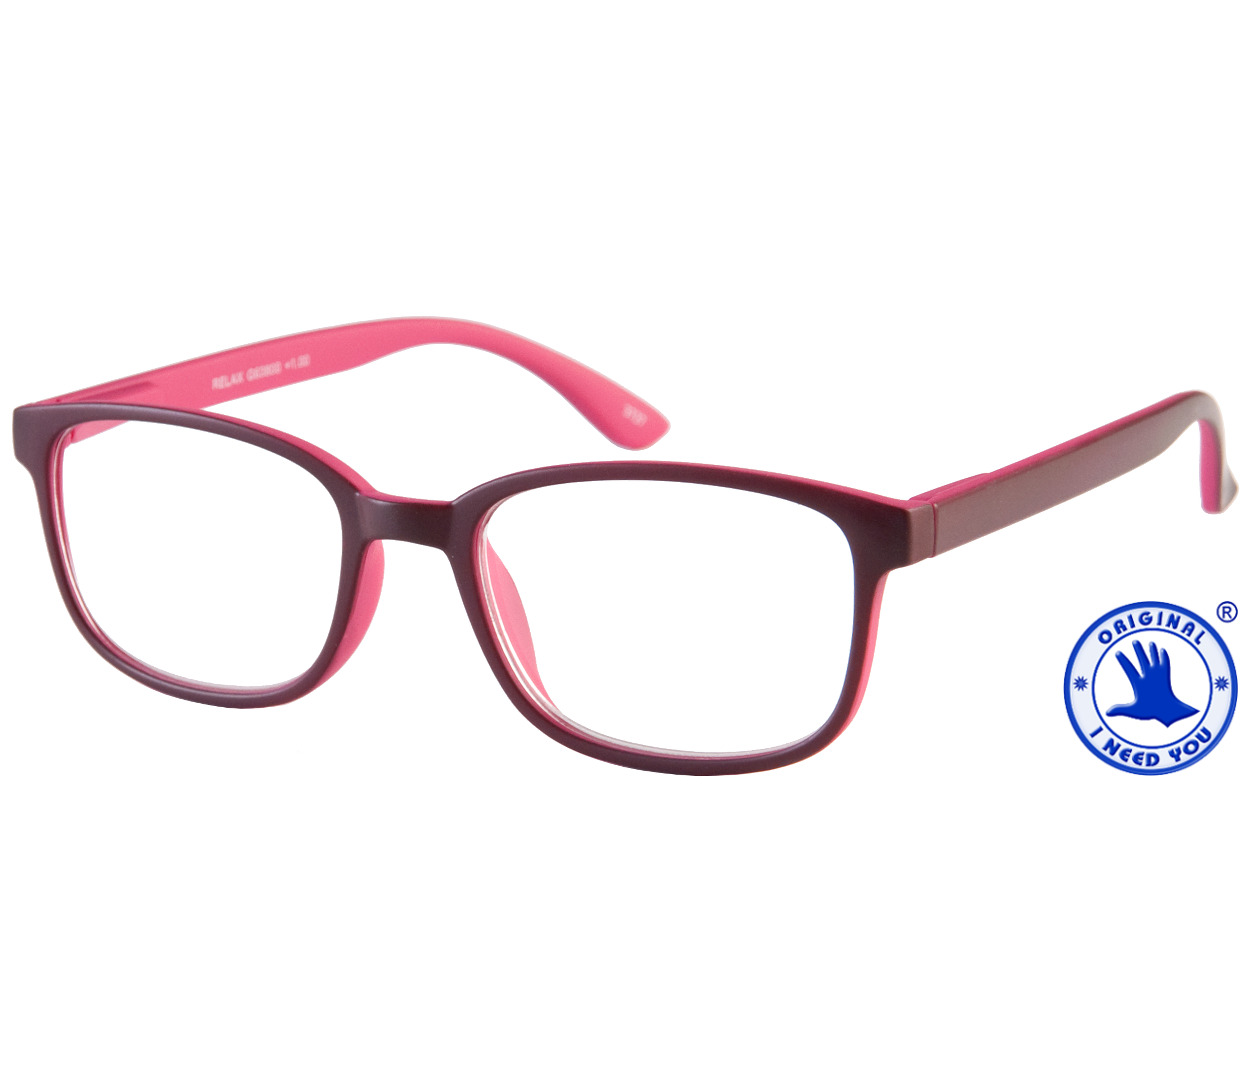 Relax (Pink) Retro Reading Glasses